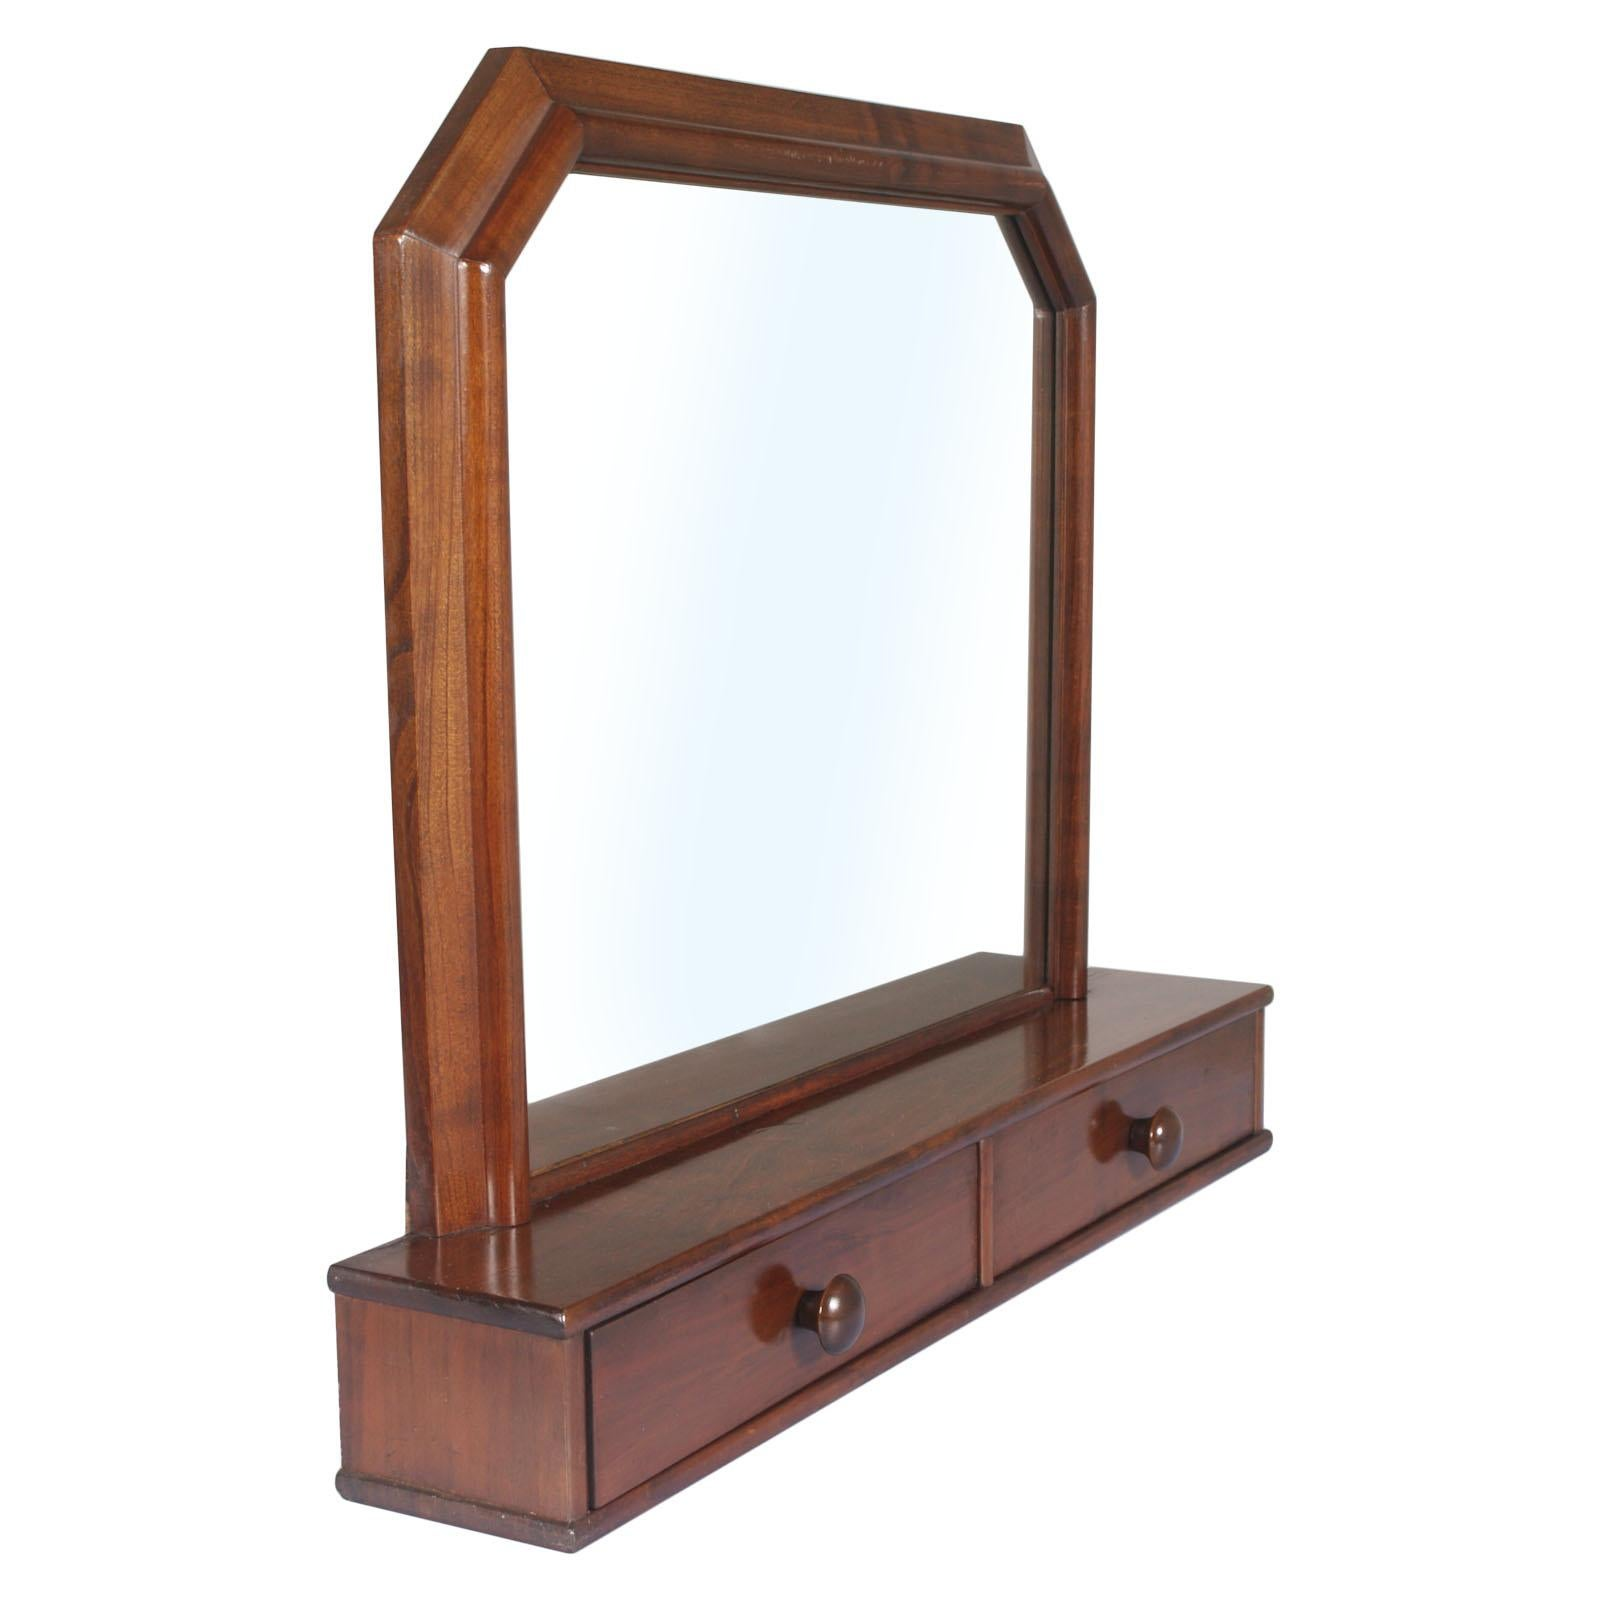 Italian Art Deco Mirror Dressing Table, Psyche Mirror in Walnut with Two Drawers